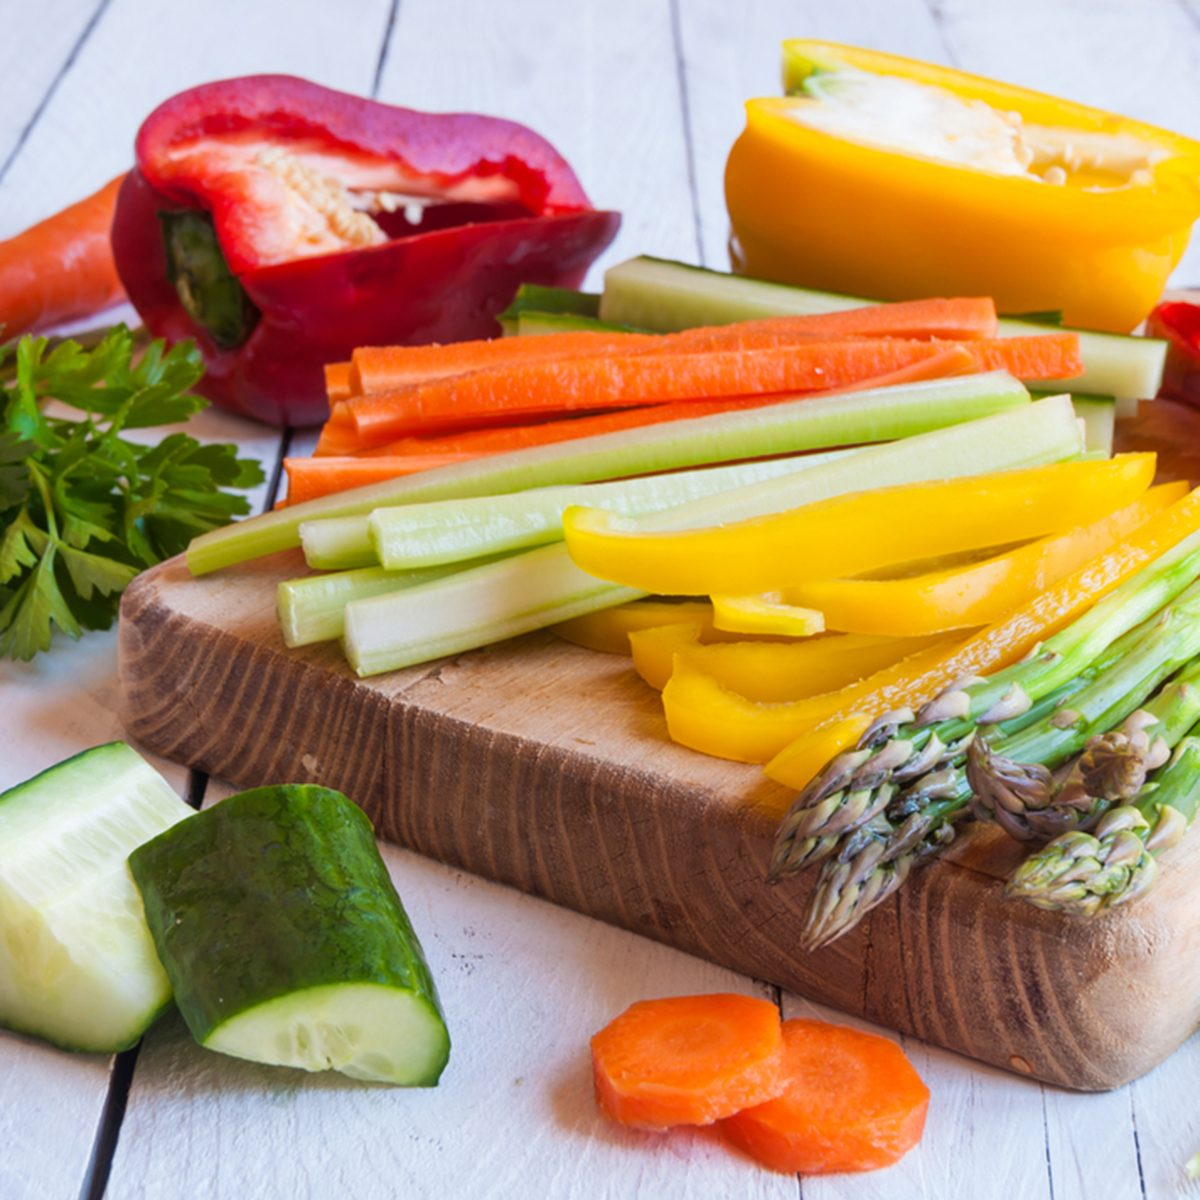 Cutting Board With Trays 10 Things You Should Skip At The Grocery Store Taste Of Home